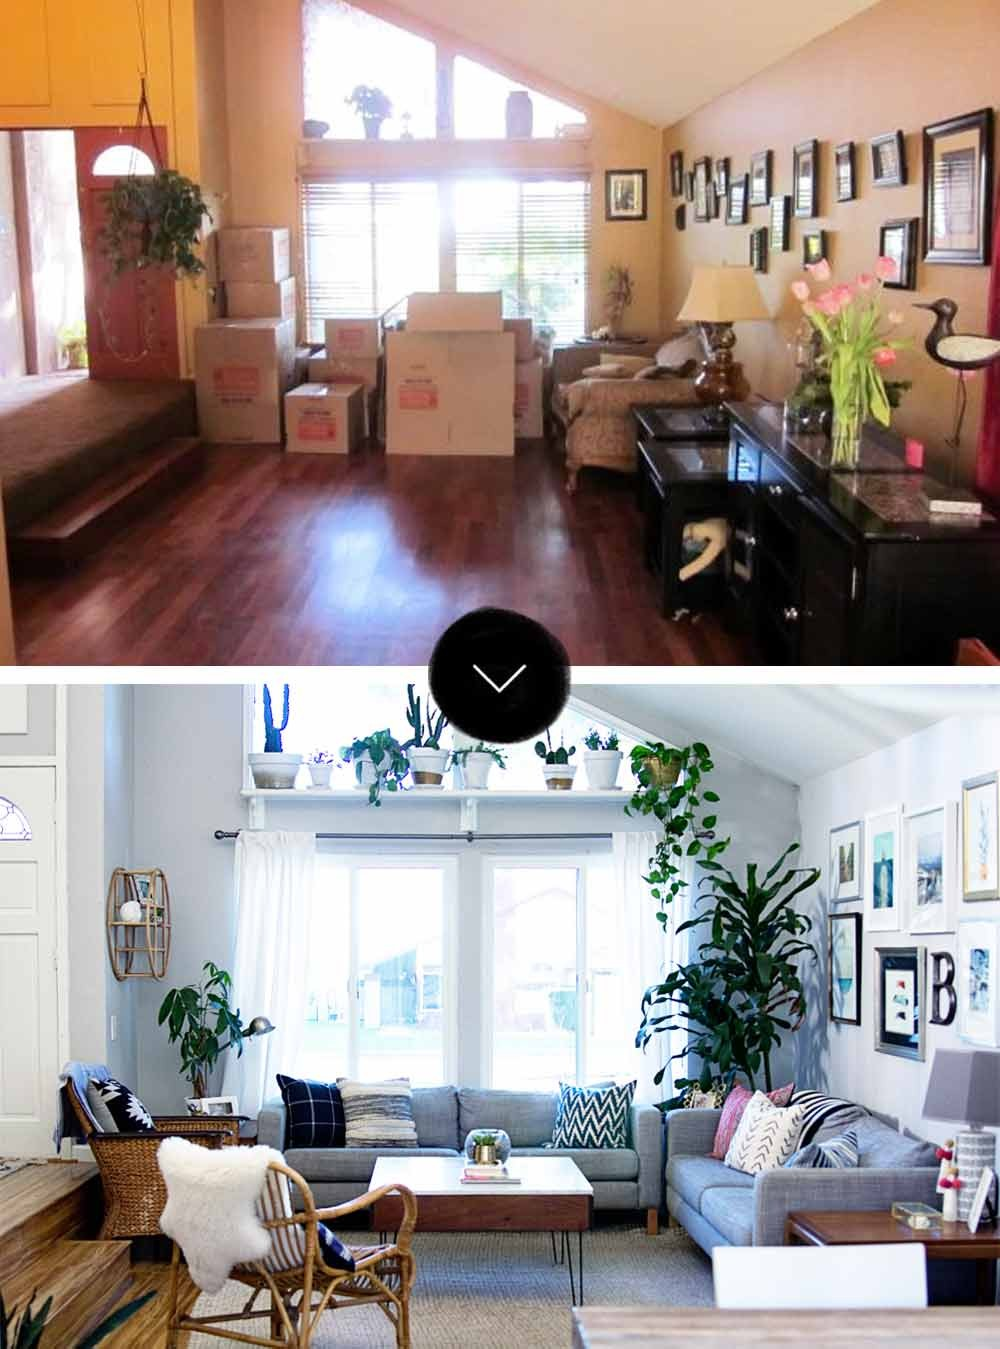 jcpenny sofas and armchairs ireland before & after: a modern-bohemian fixer-upper in southern ...